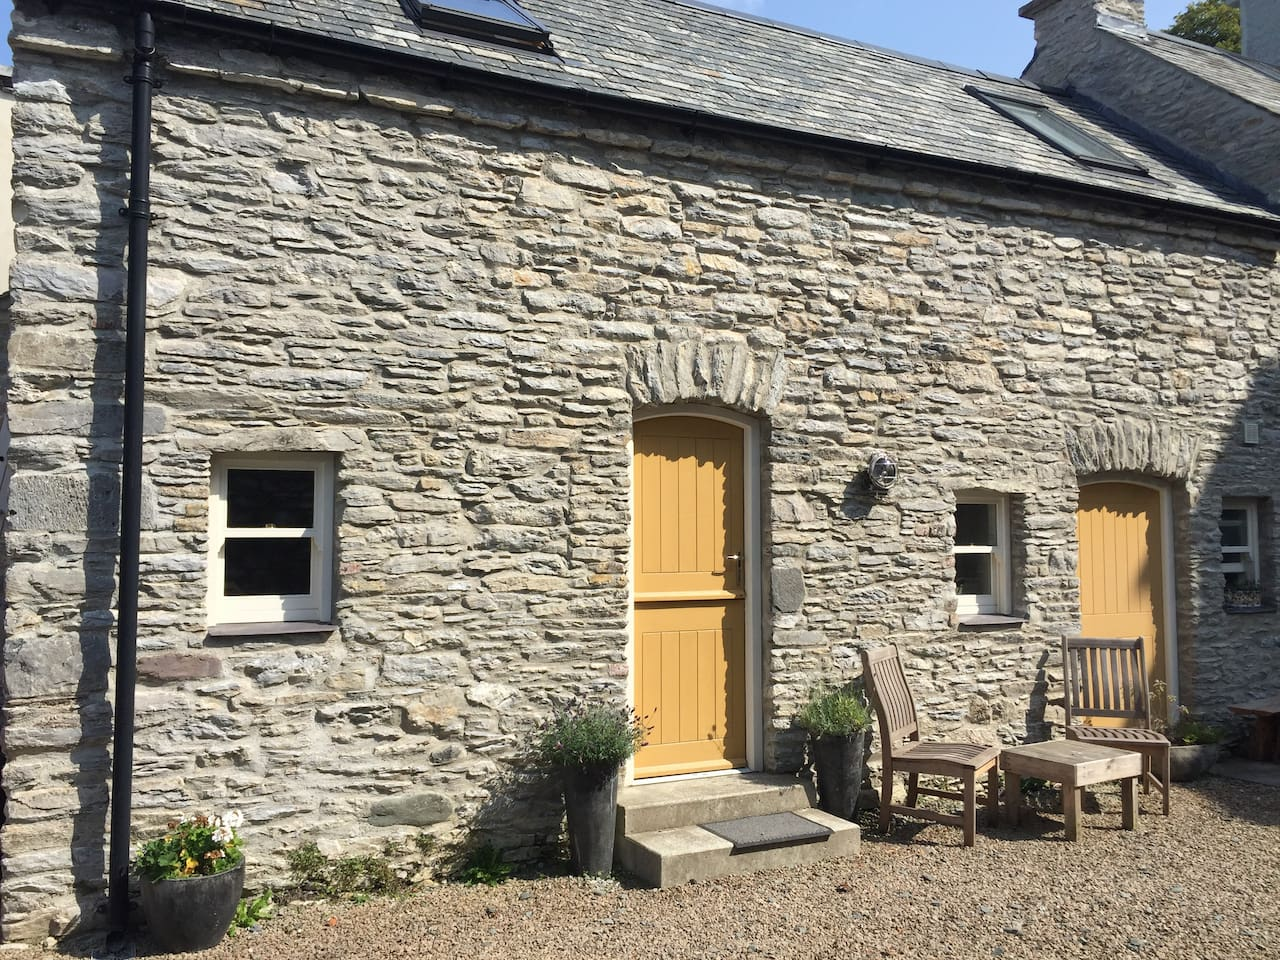 The front of the cottage has been meticulously restored stone by stone and features a stable door which opens onto the garden area which is enclosed and private from the public.